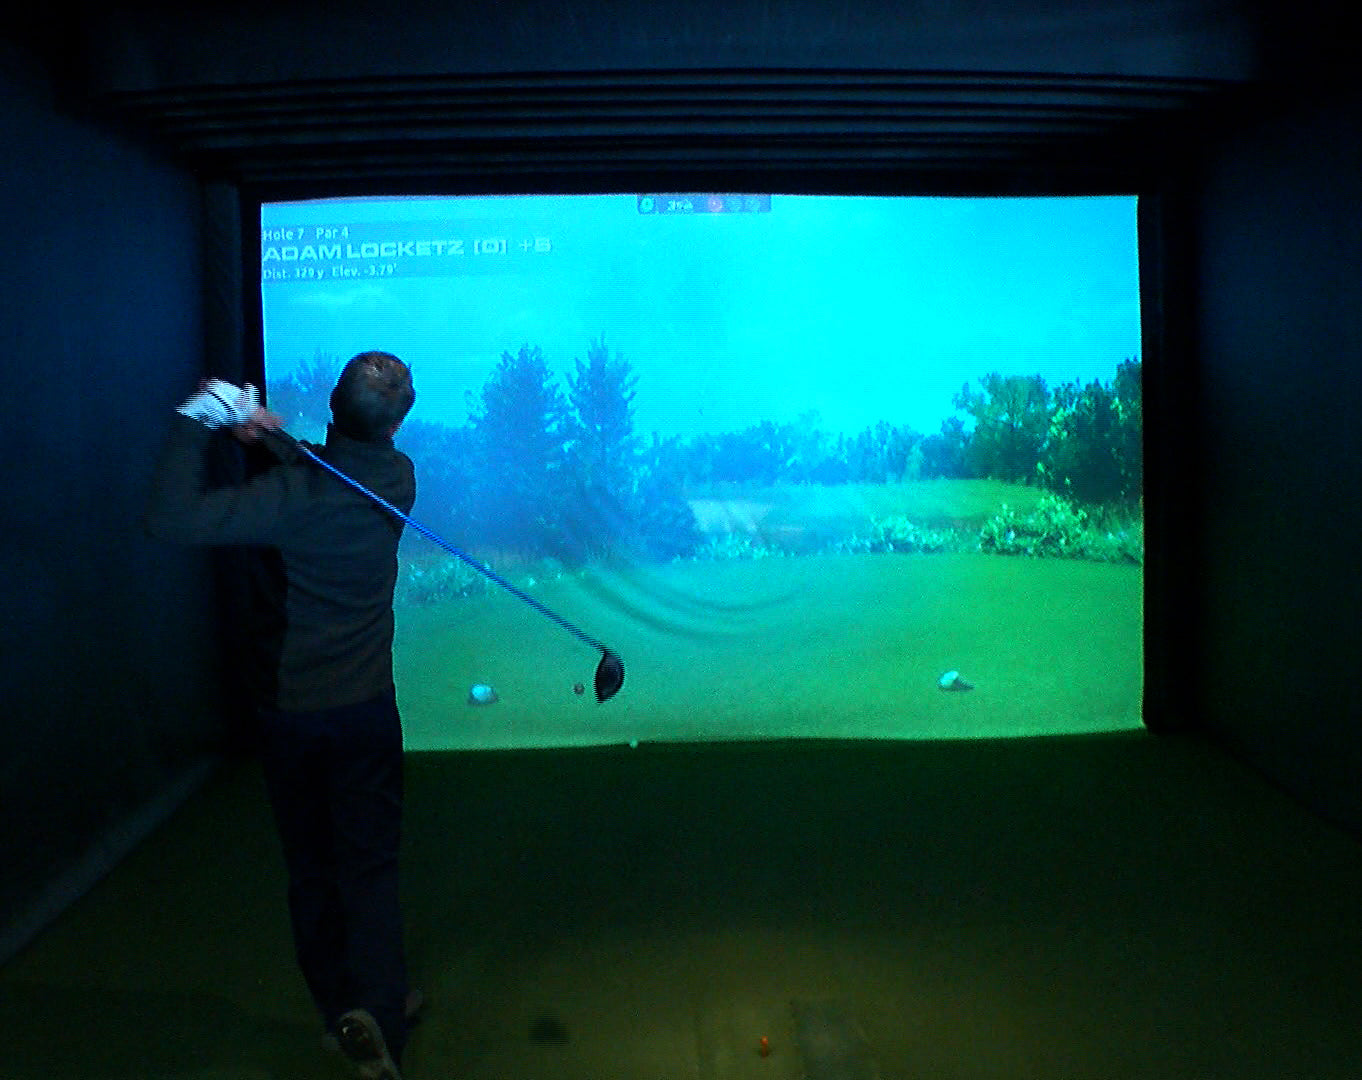 Golf Simulator Room - 18 holes